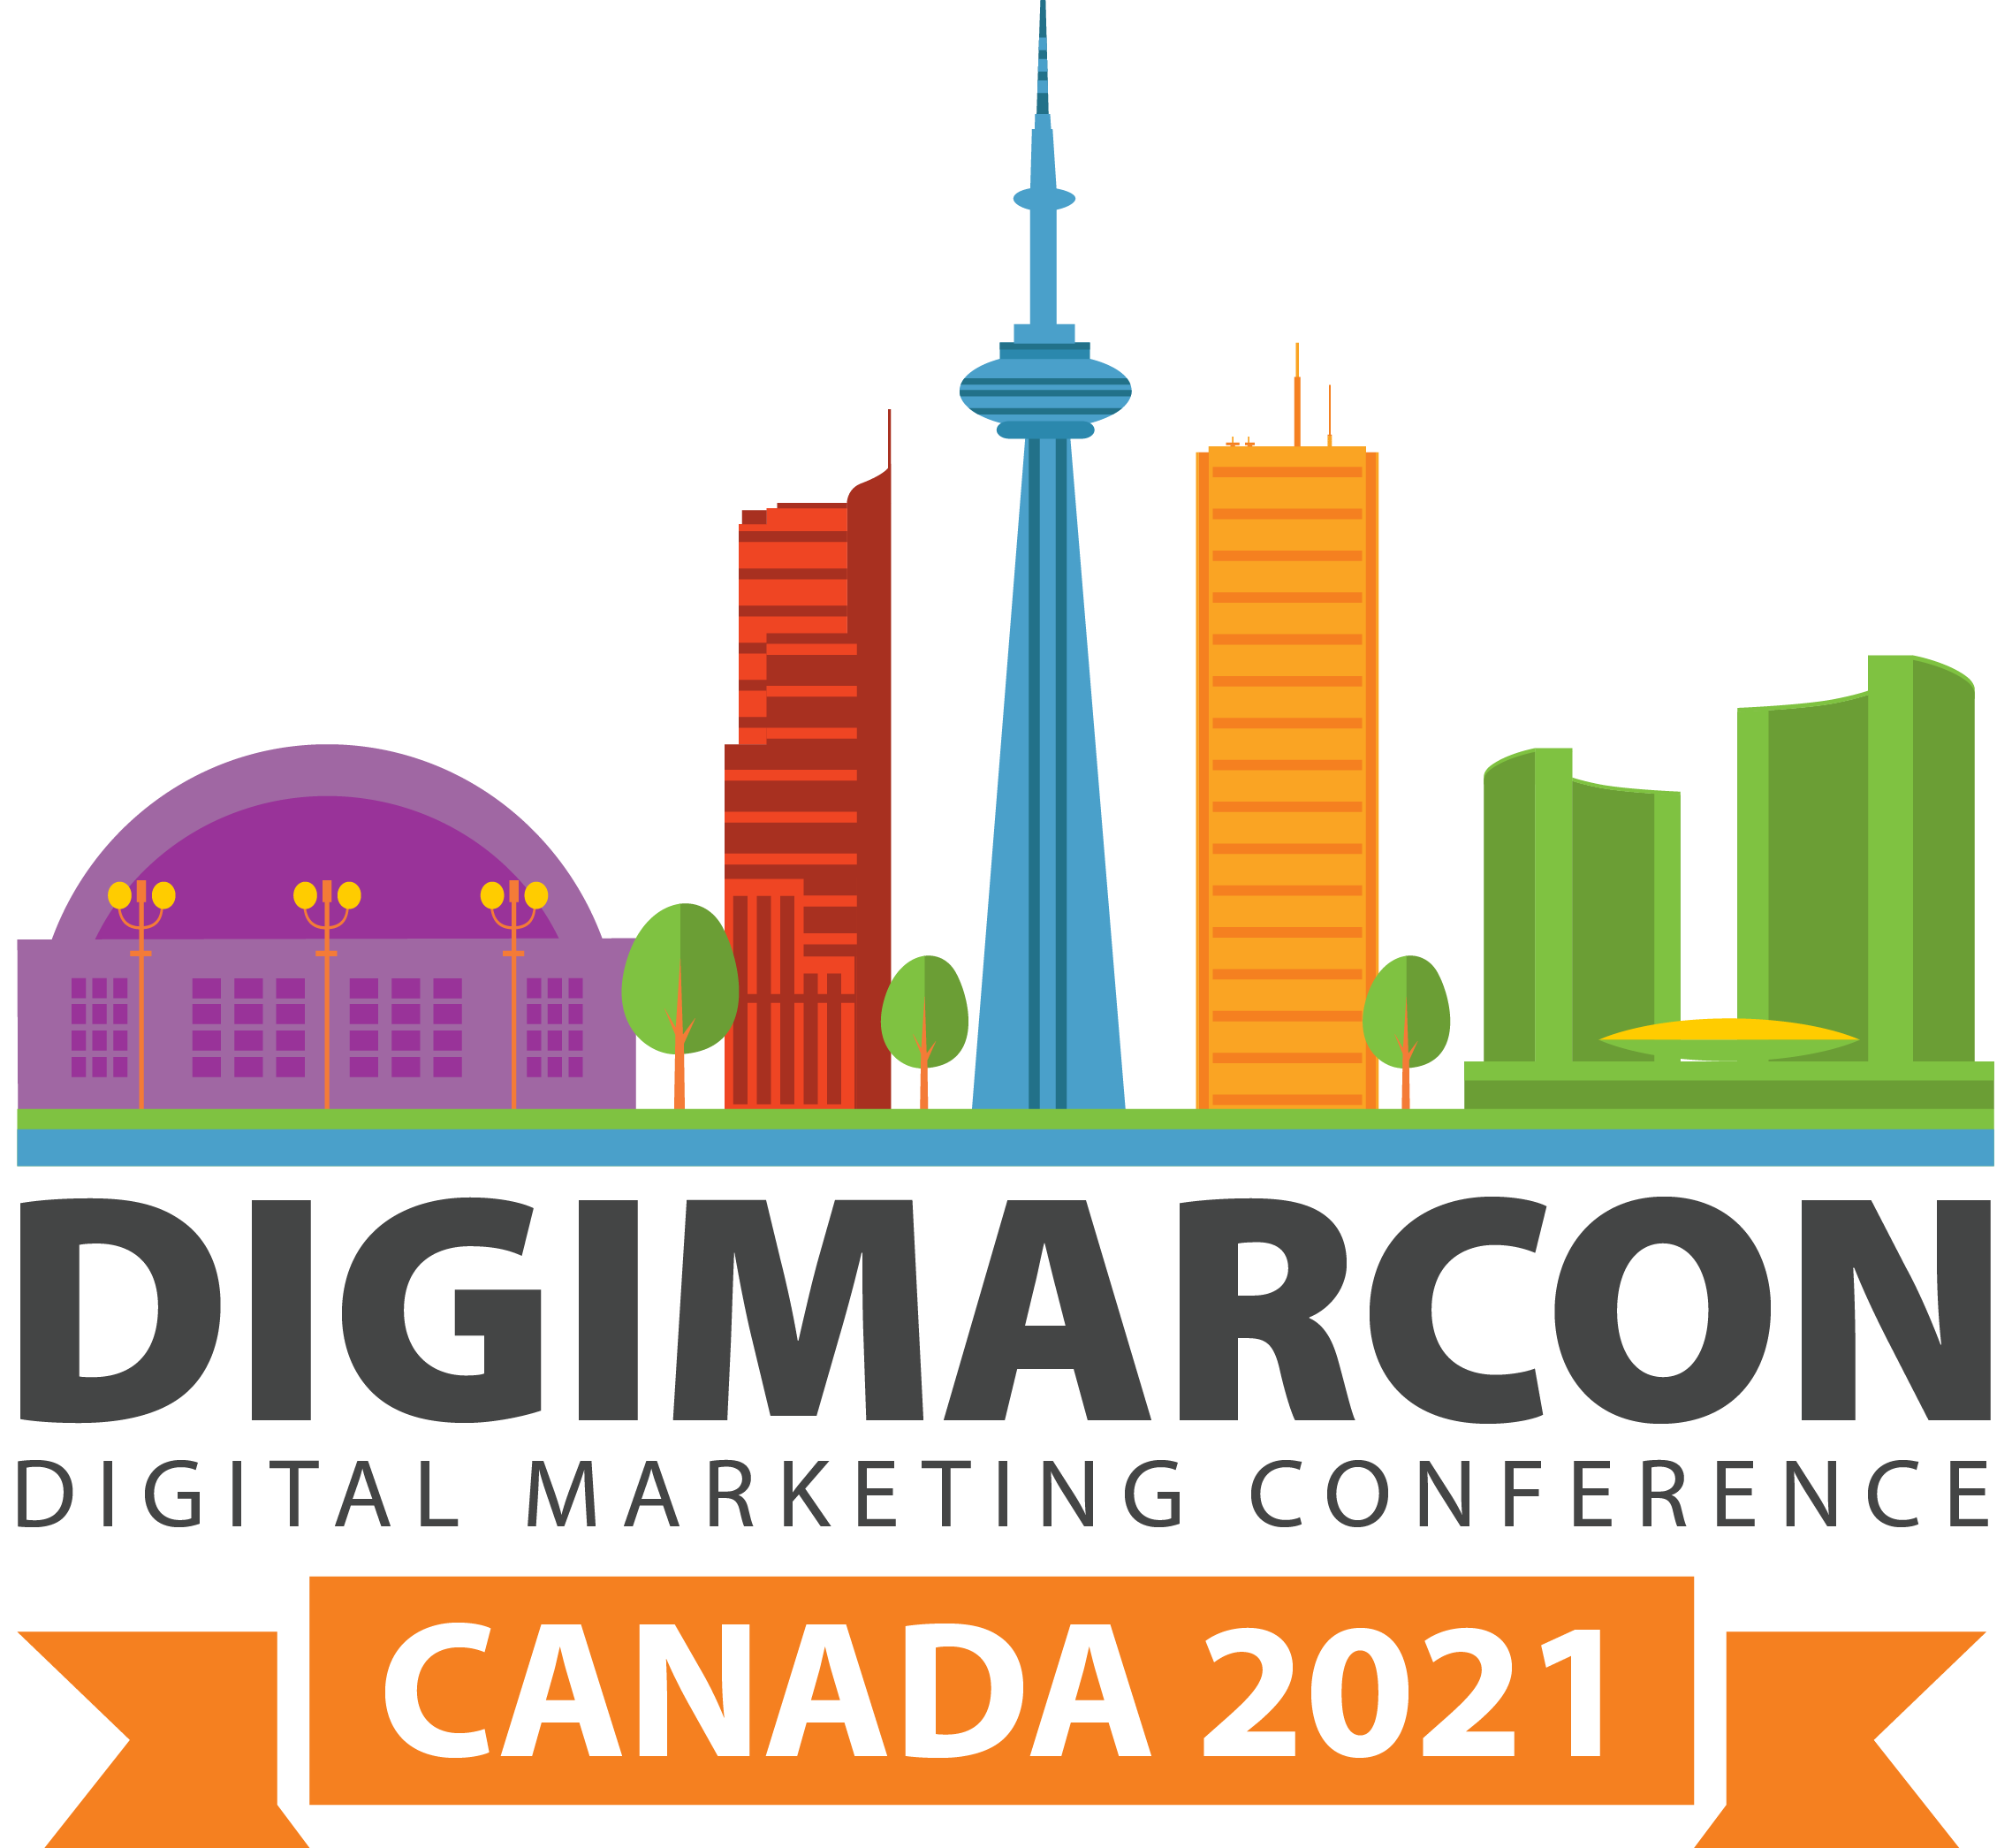 DigiMarCon Canada 2020 – Digital Marketing Conference & Exhibition